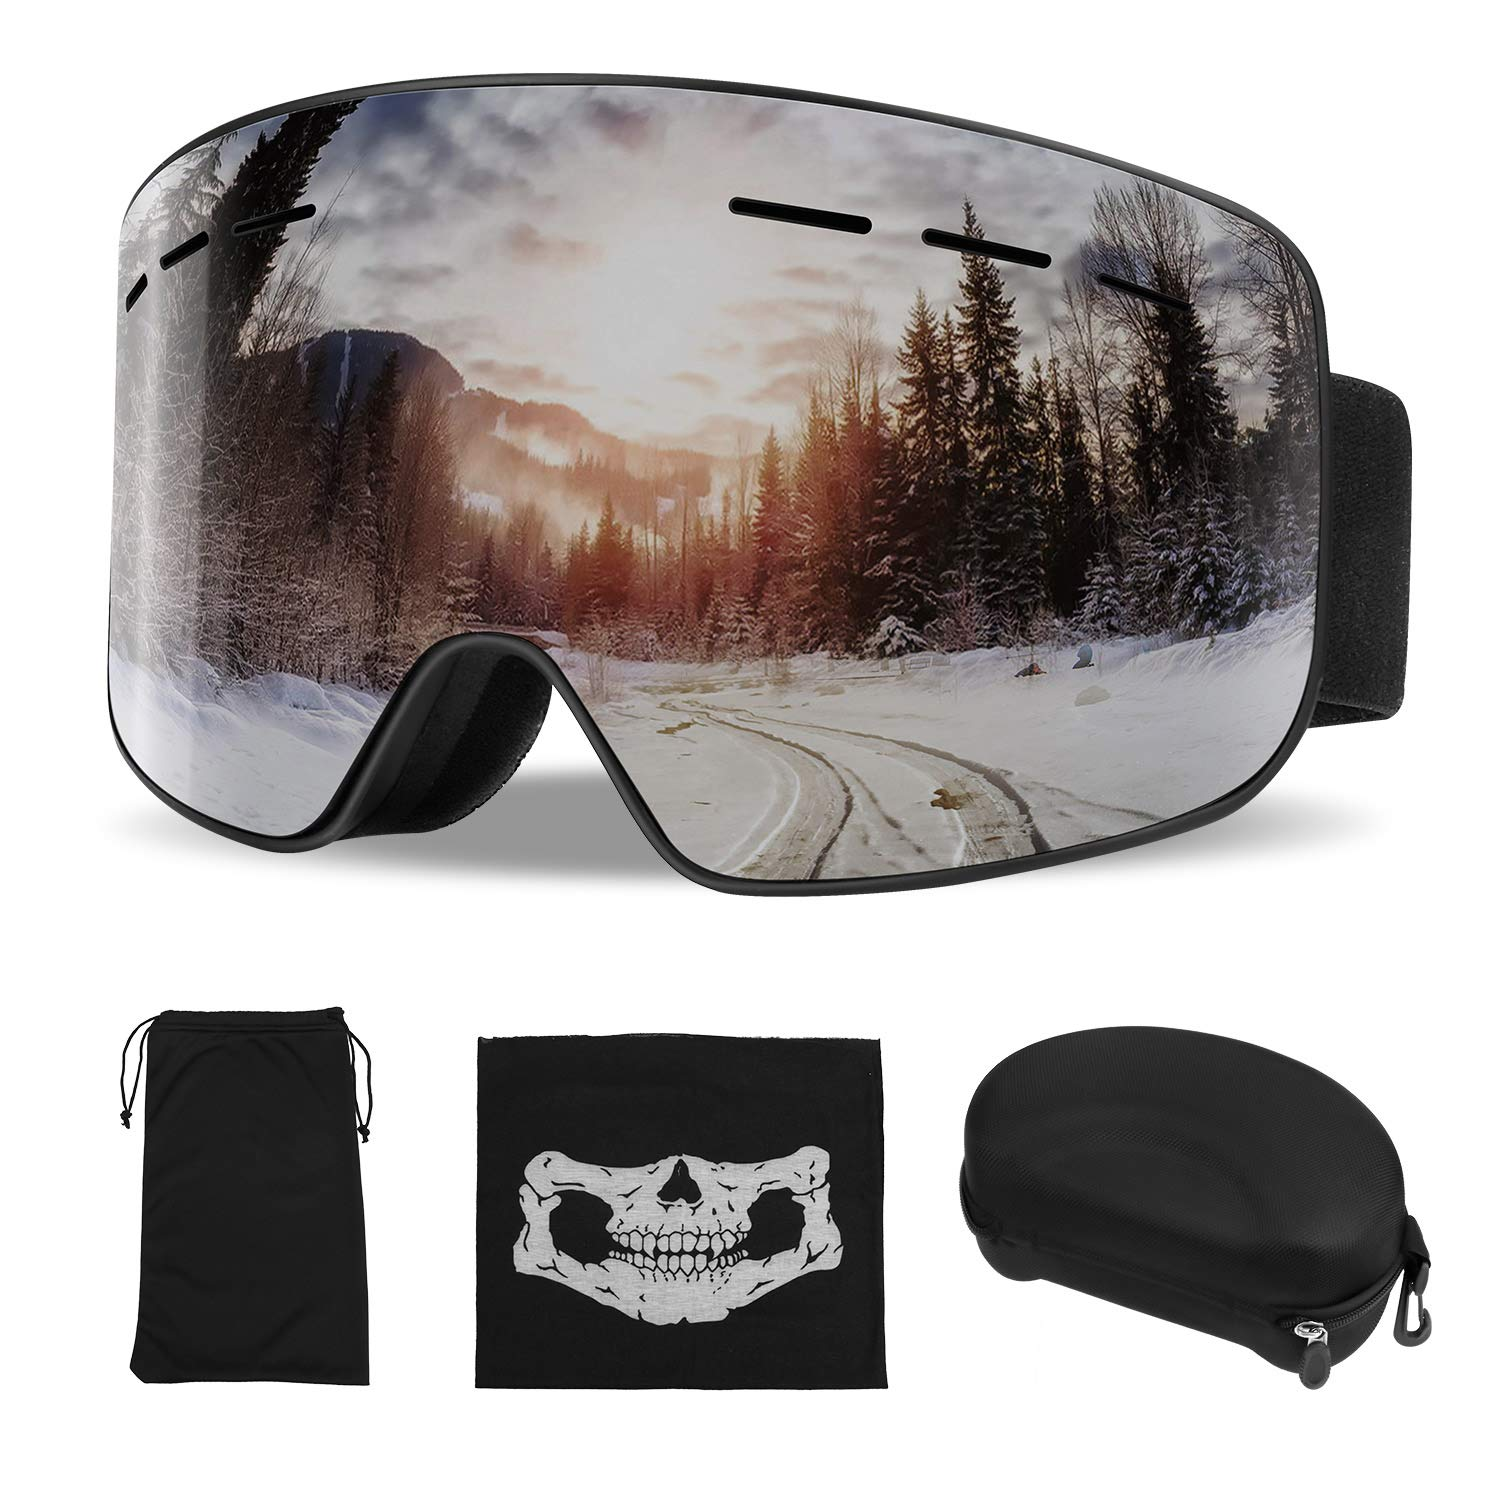 ActionEliters Ski Goggles,Snow Snowboard Snowboarding Goggles Over Glasses Helmet Compatible with Dual Layers Lens Anti-Fog UV Protection for Men,Women,Youth,Boys&Girls